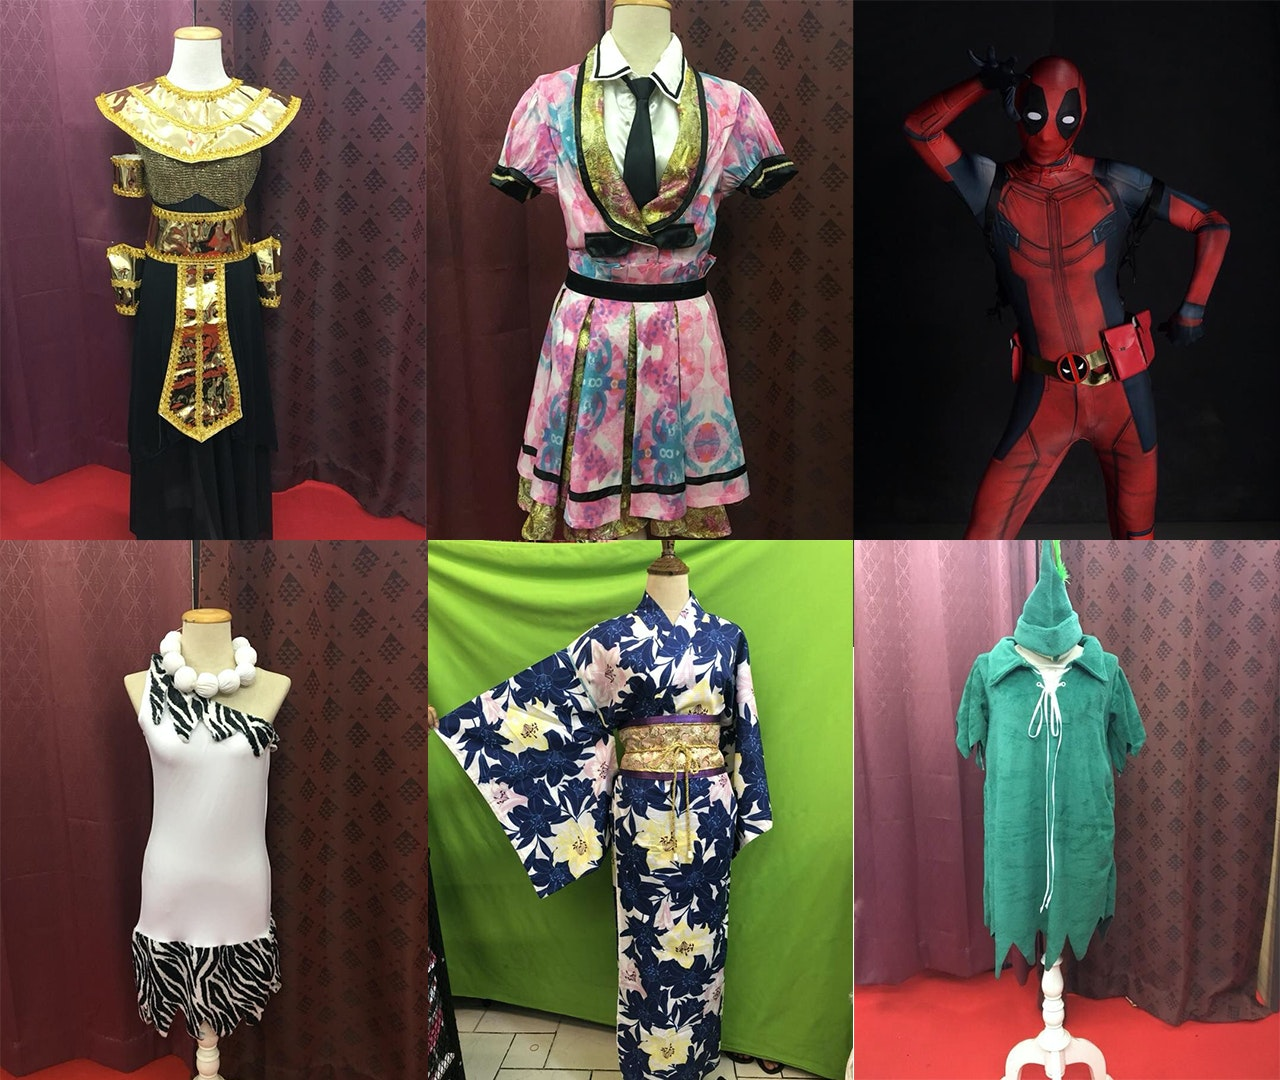 d2dd963c14b 7 Costume Shops in Bangkok That Will Help You Transform Into Your ...